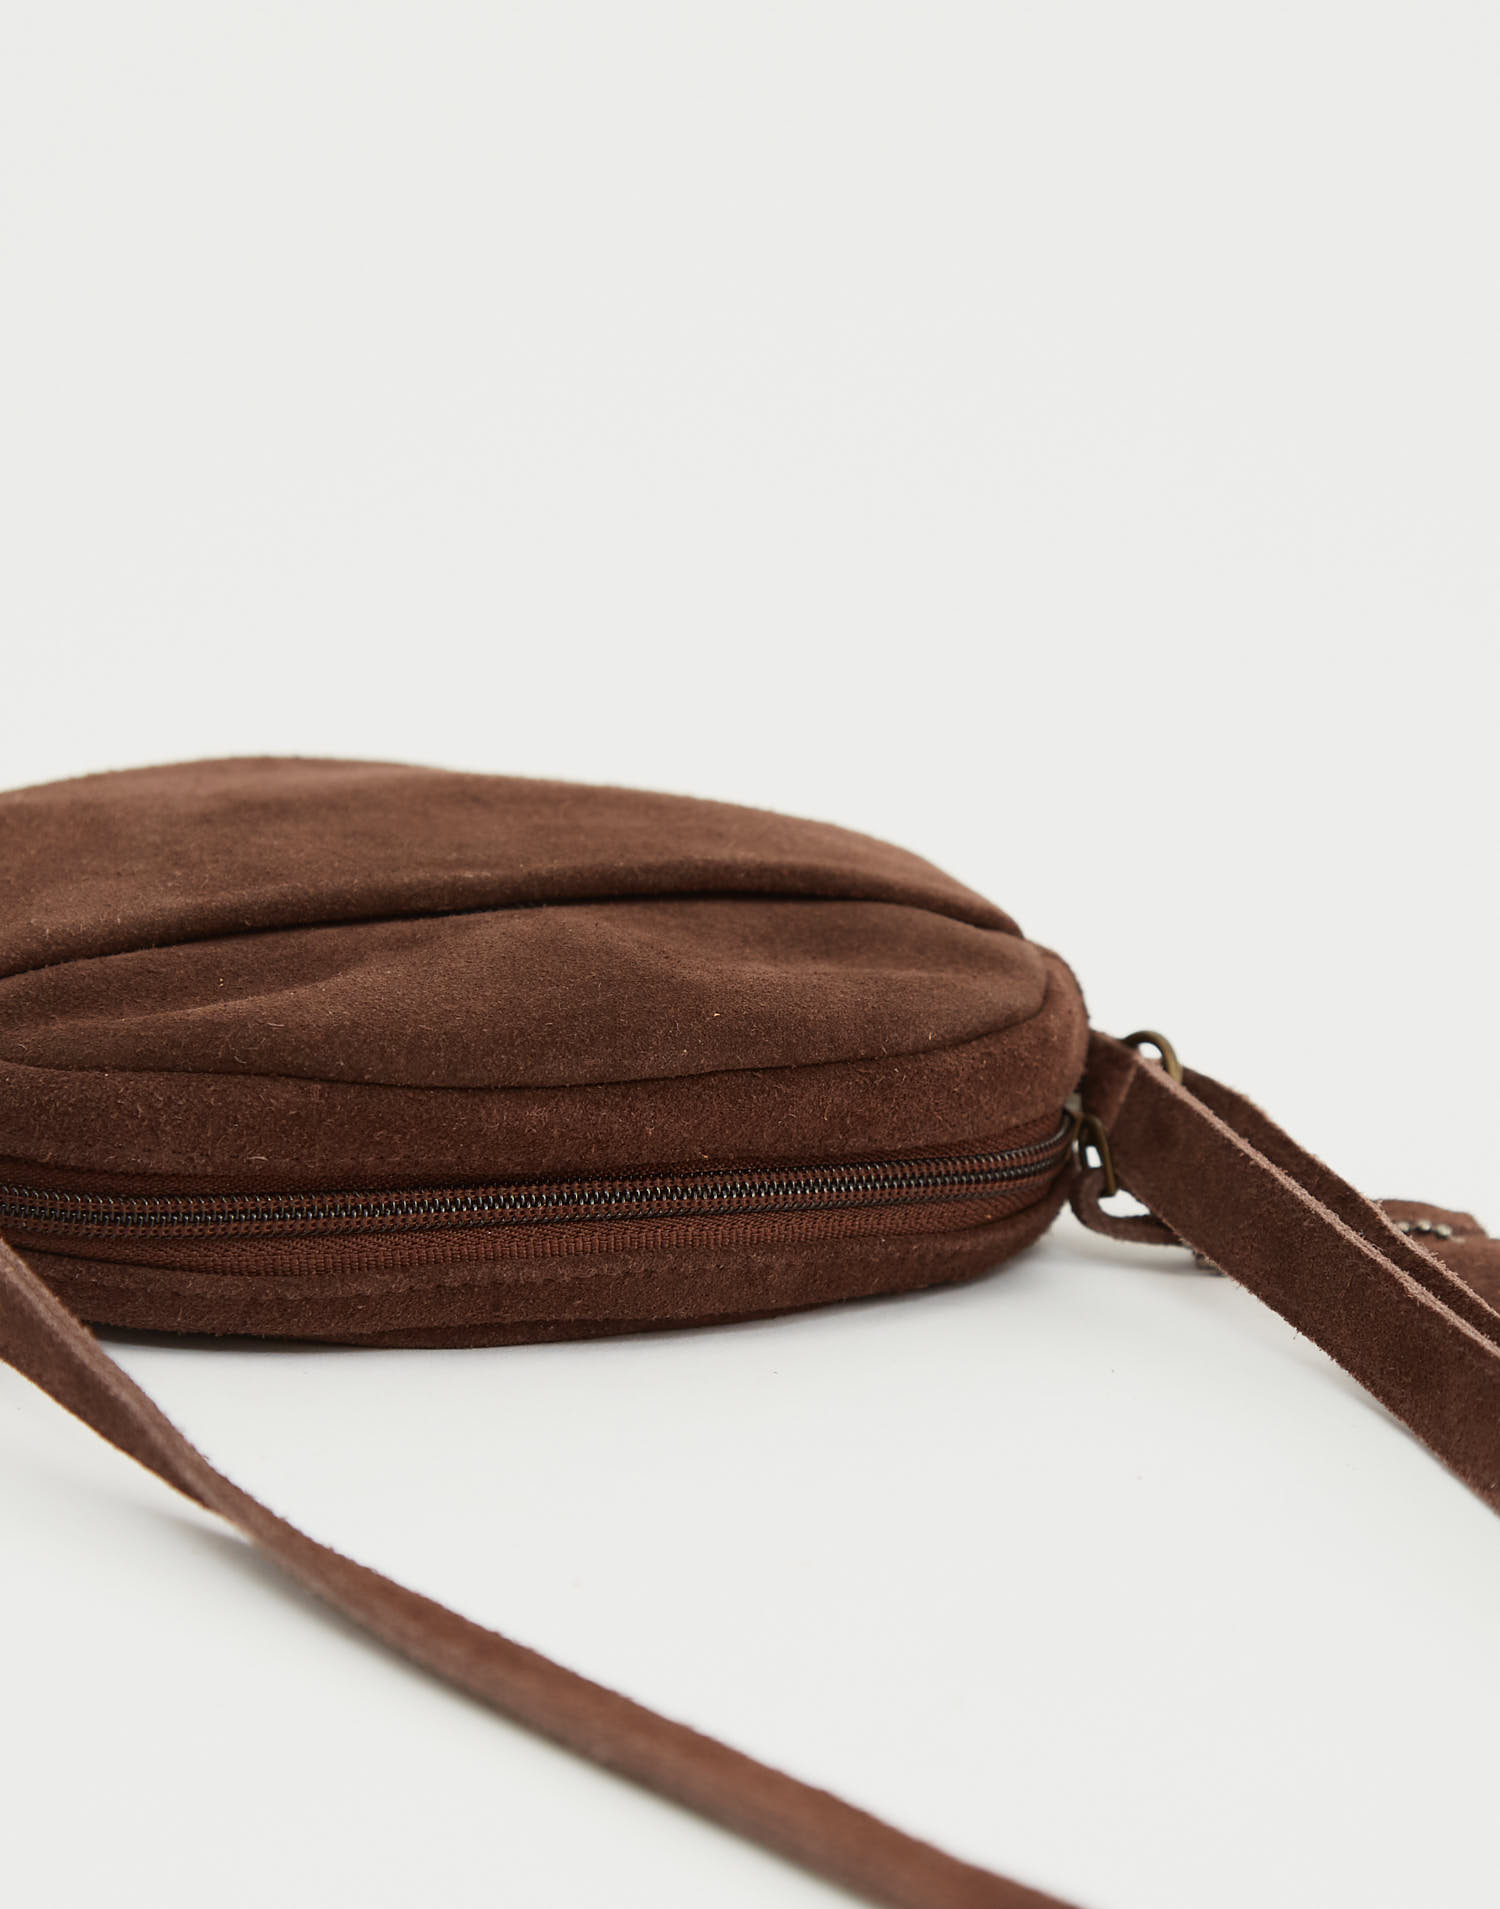 Round leather crossbody bag